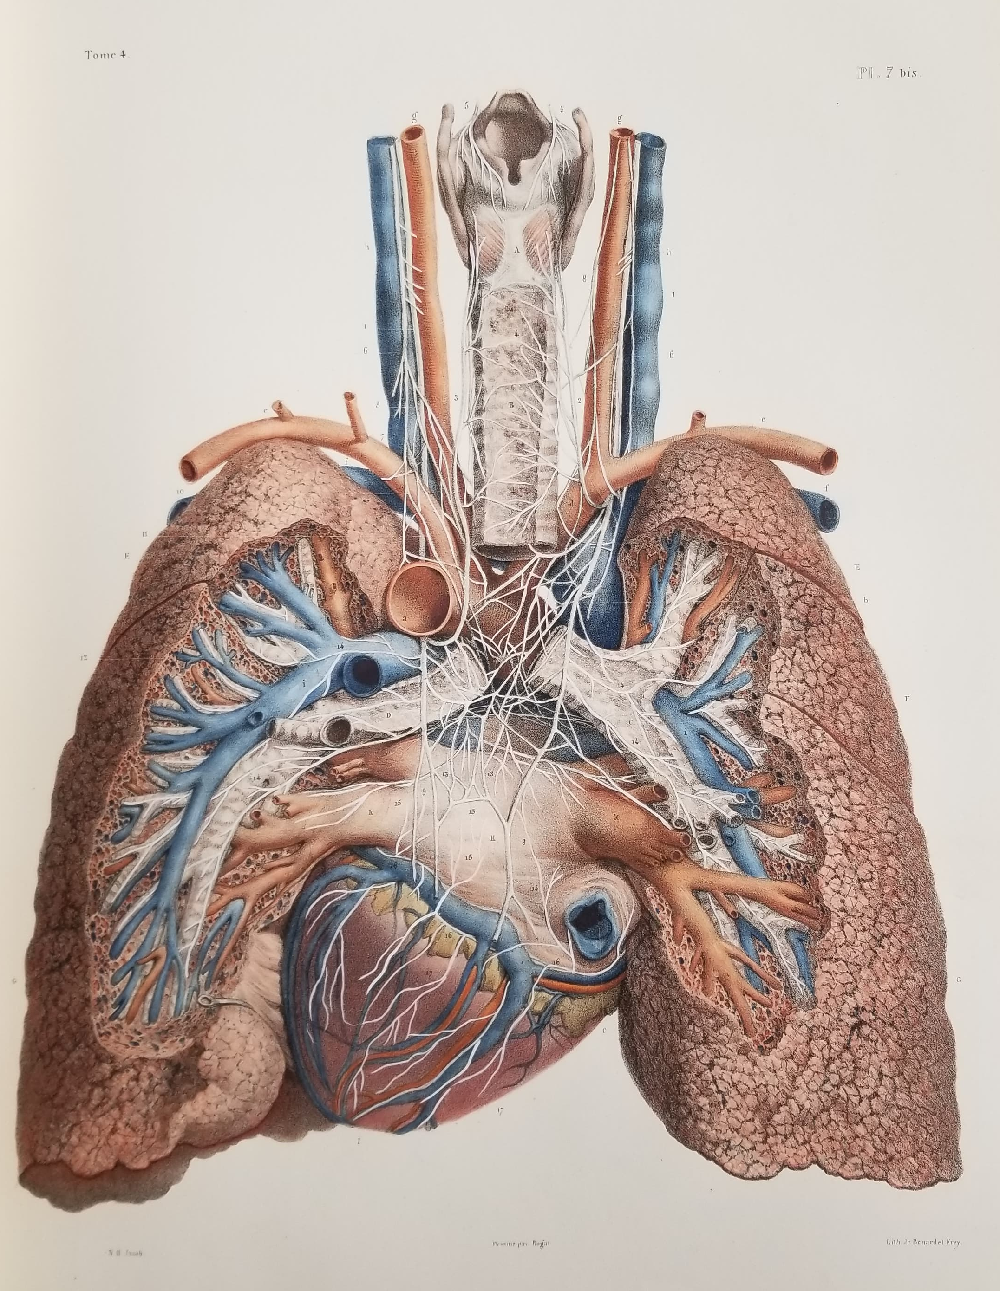 Detailed anatomical drawing of the lungs and heart by Bougery.